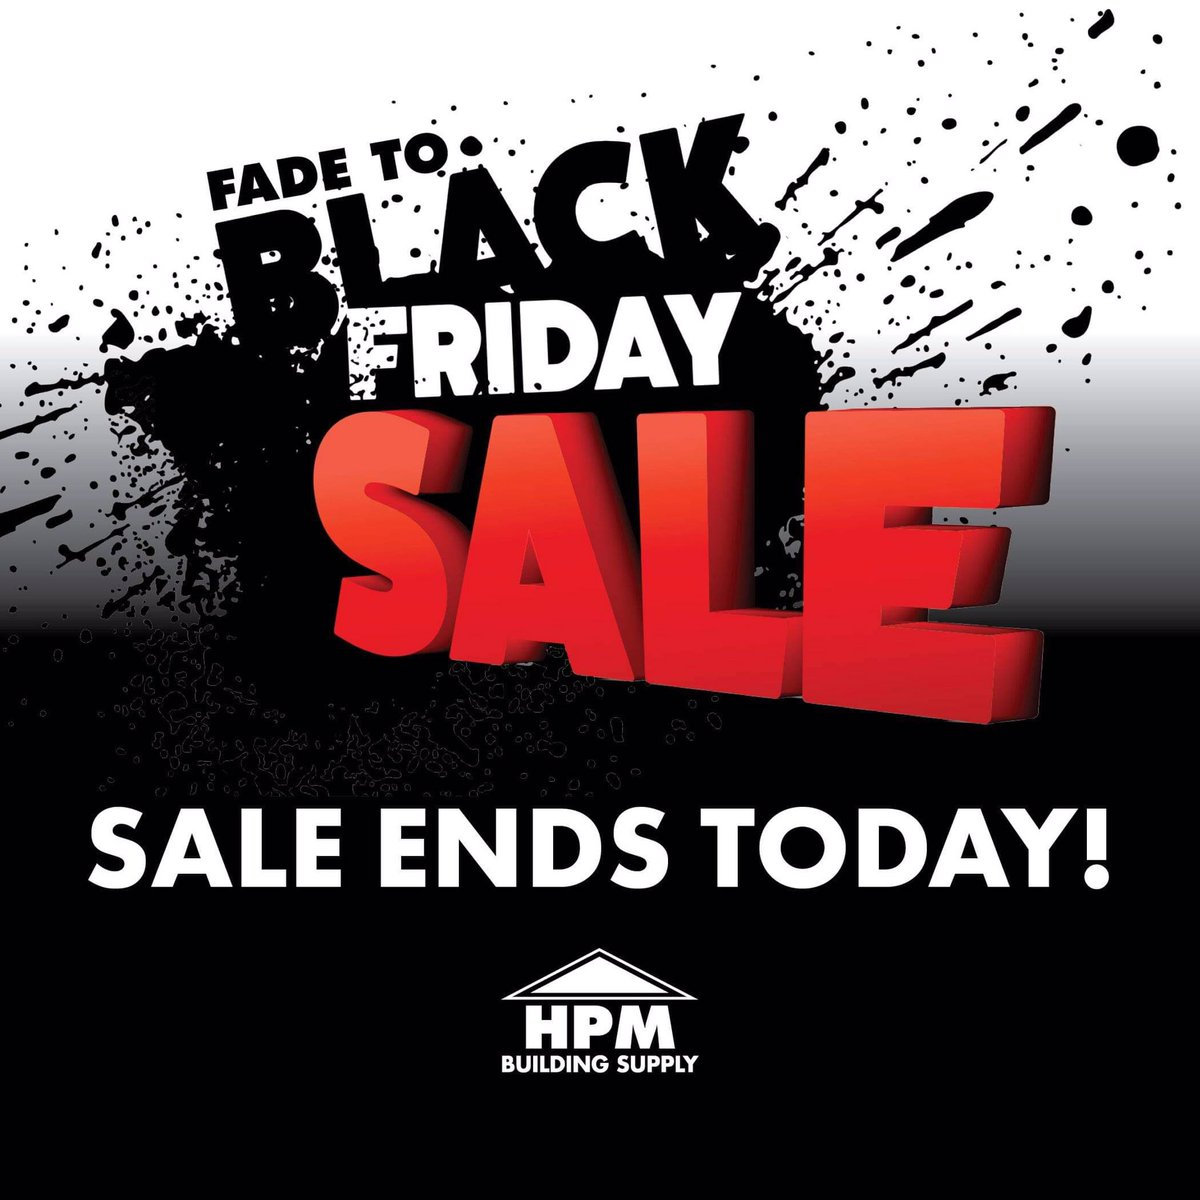 HPM Building Supply on Twitter: